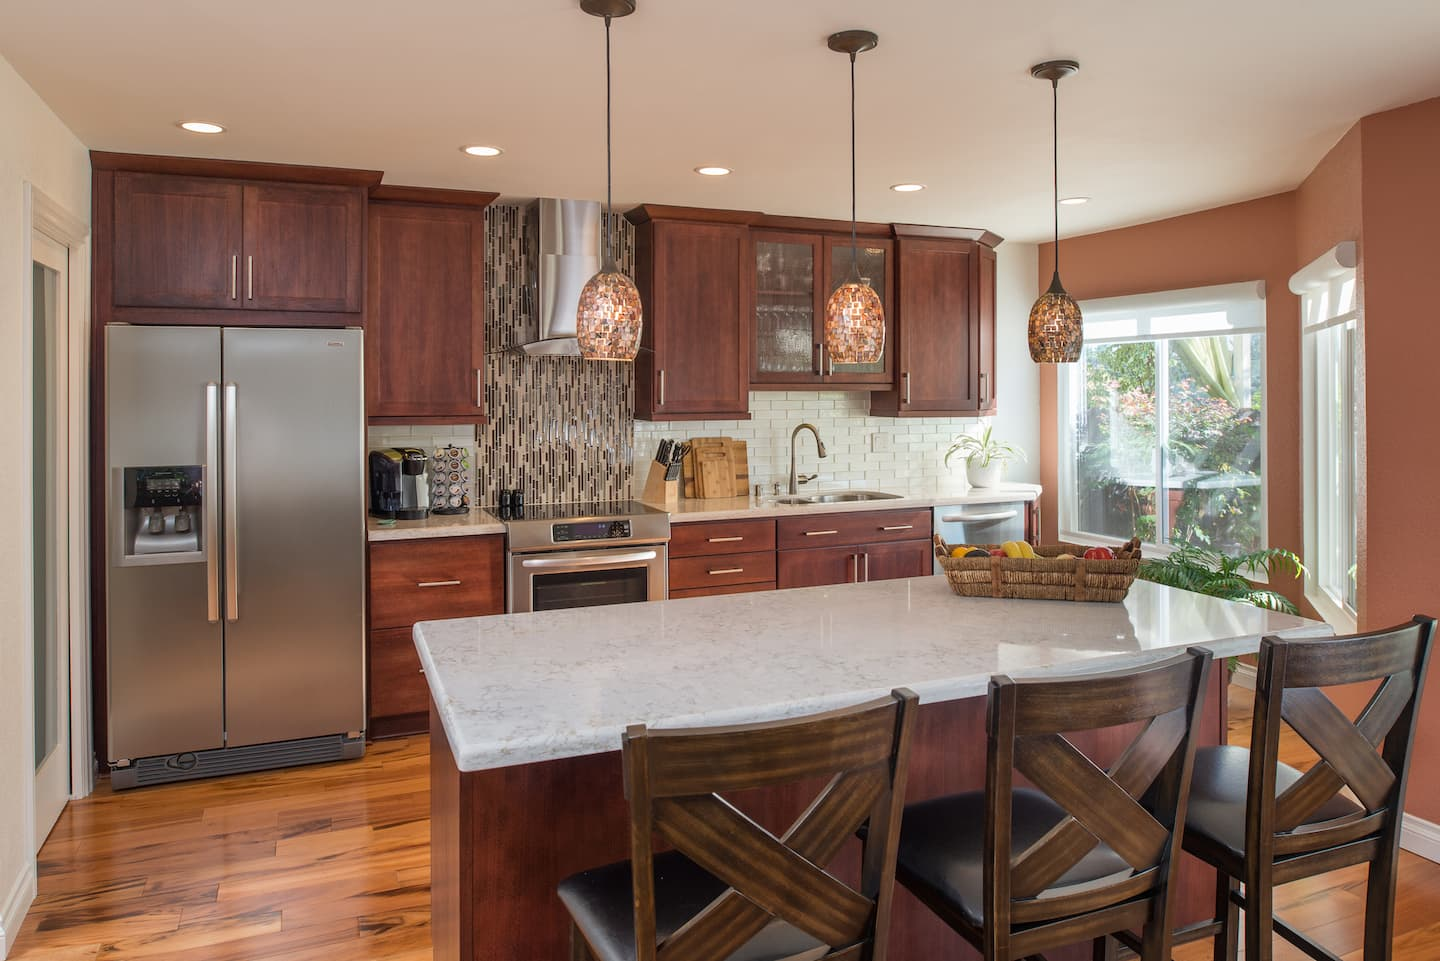 Hire the Best Kitchen Remodeling Contractor